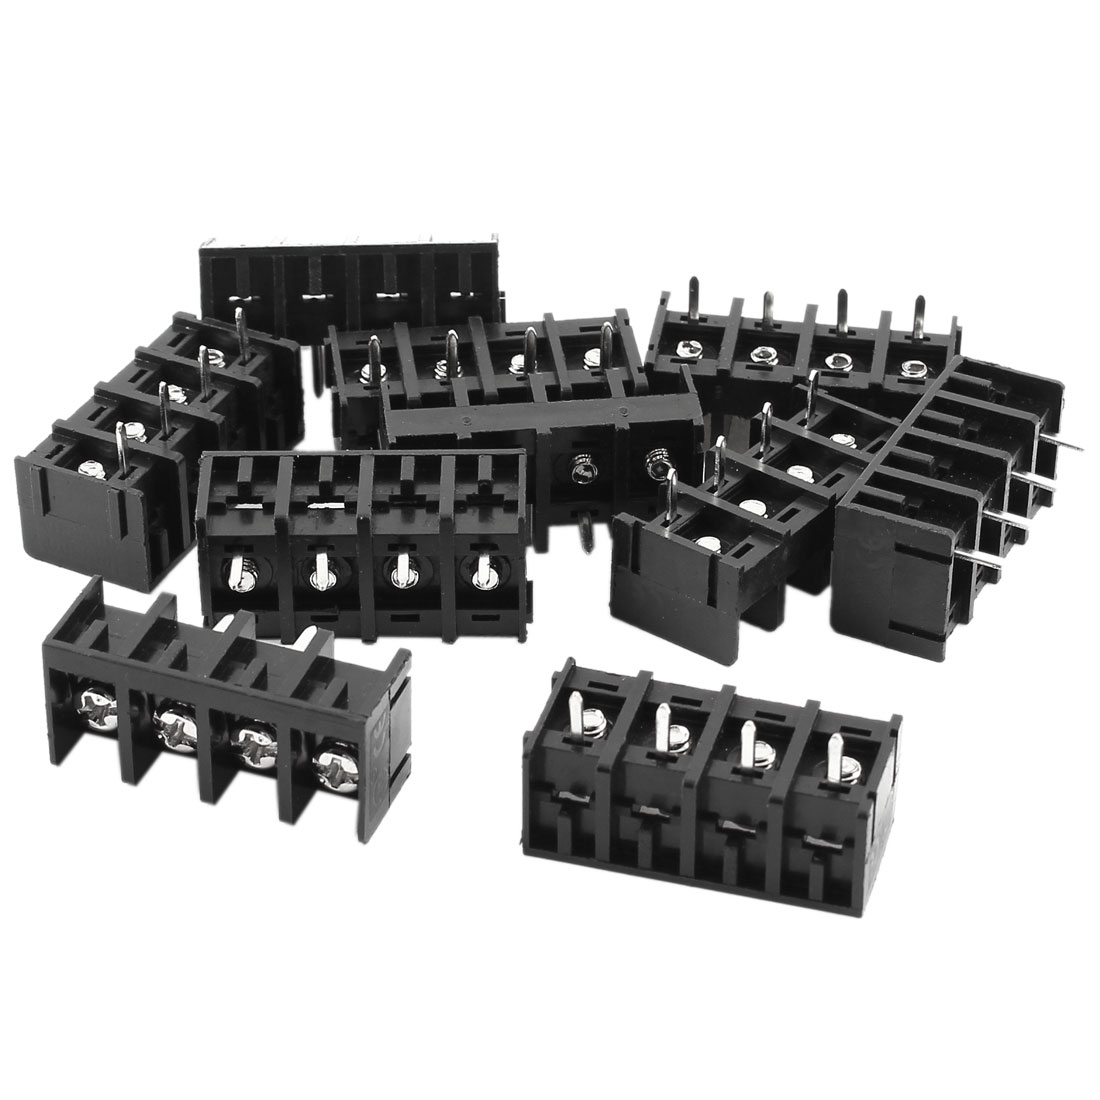 10 Pcs 300V 30A 9.5mm Pitch 4 Screw Terminal Barrier Block Black